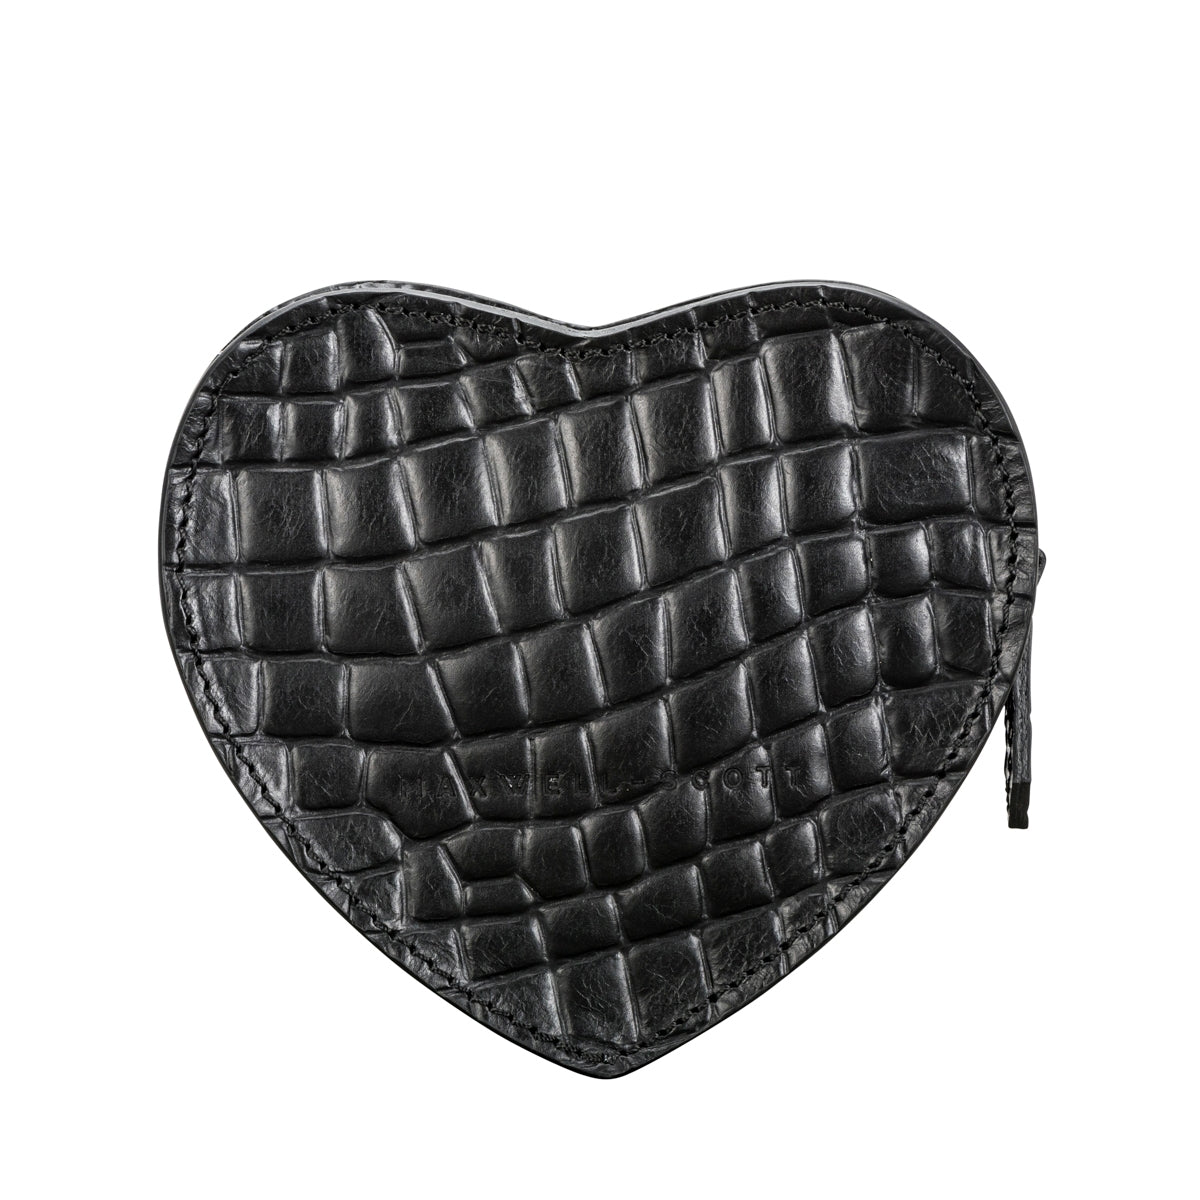 Image 3 of the 'MirabellaL' Croco Heart-shaped Handbag Organiser